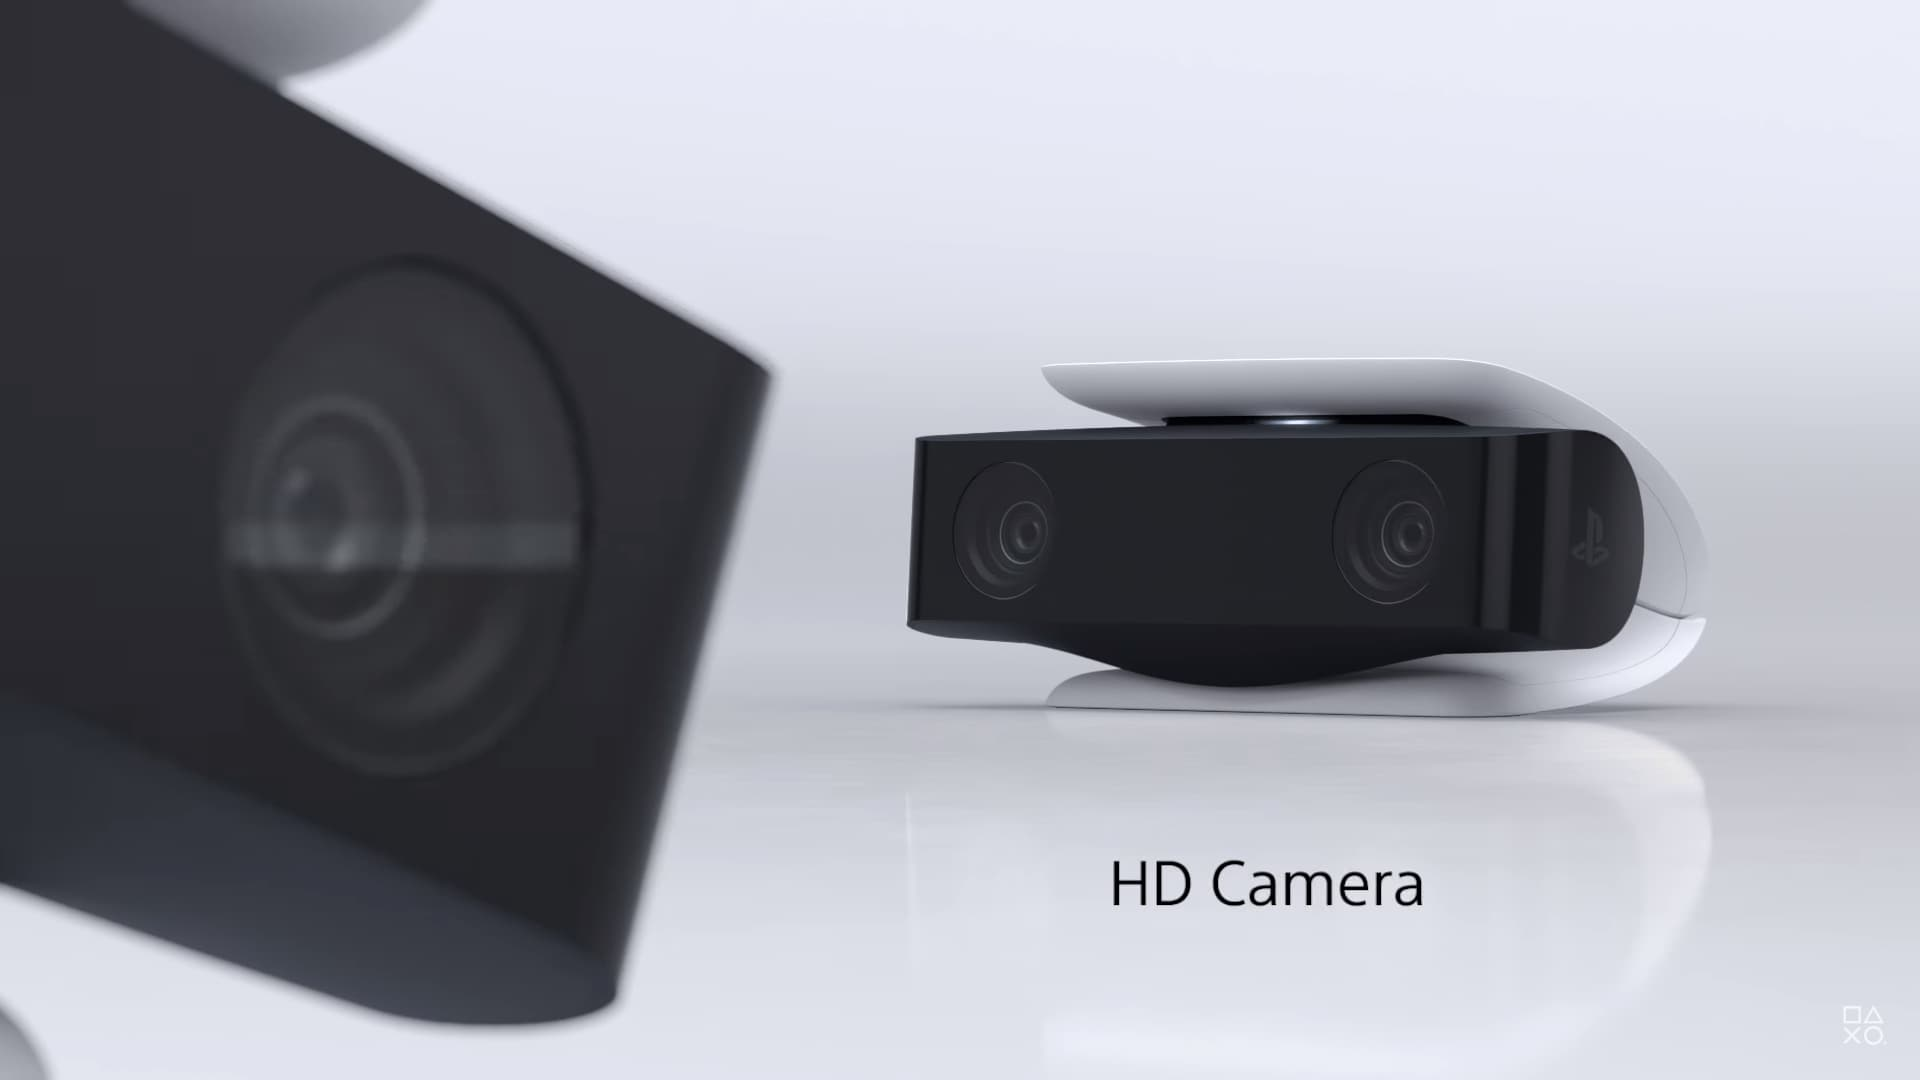 There's a new HD camera in the PS5 family as well, details of which are yet to be known.